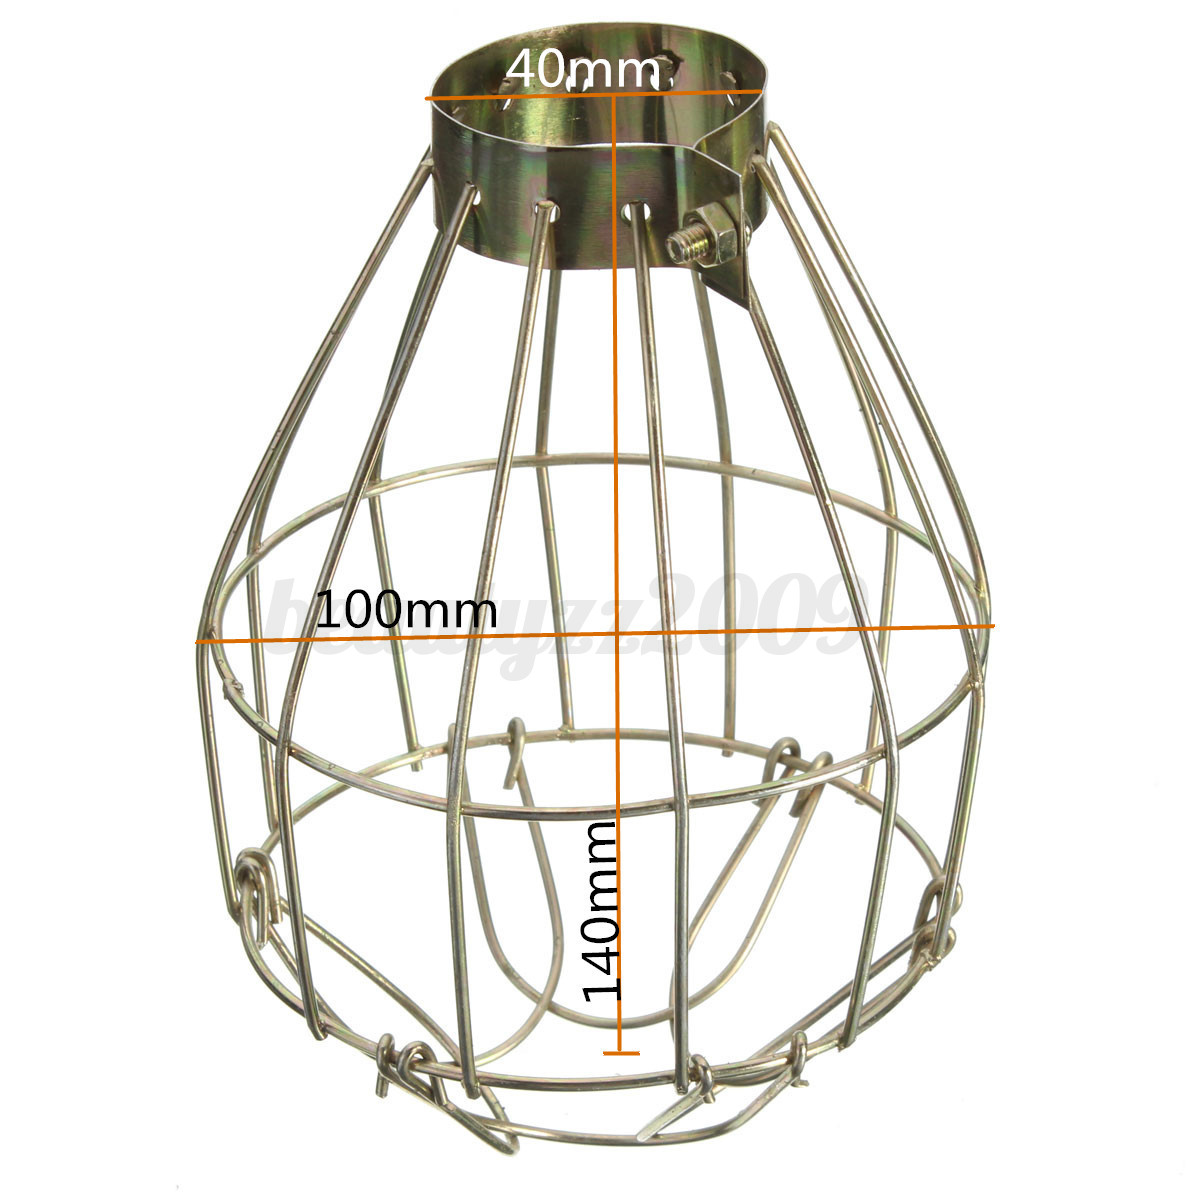 vintage trouble light industrial metal wire bulb guard clamp on lamp cage cov. Black Bedroom Furniture Sets. Home Design Ideas